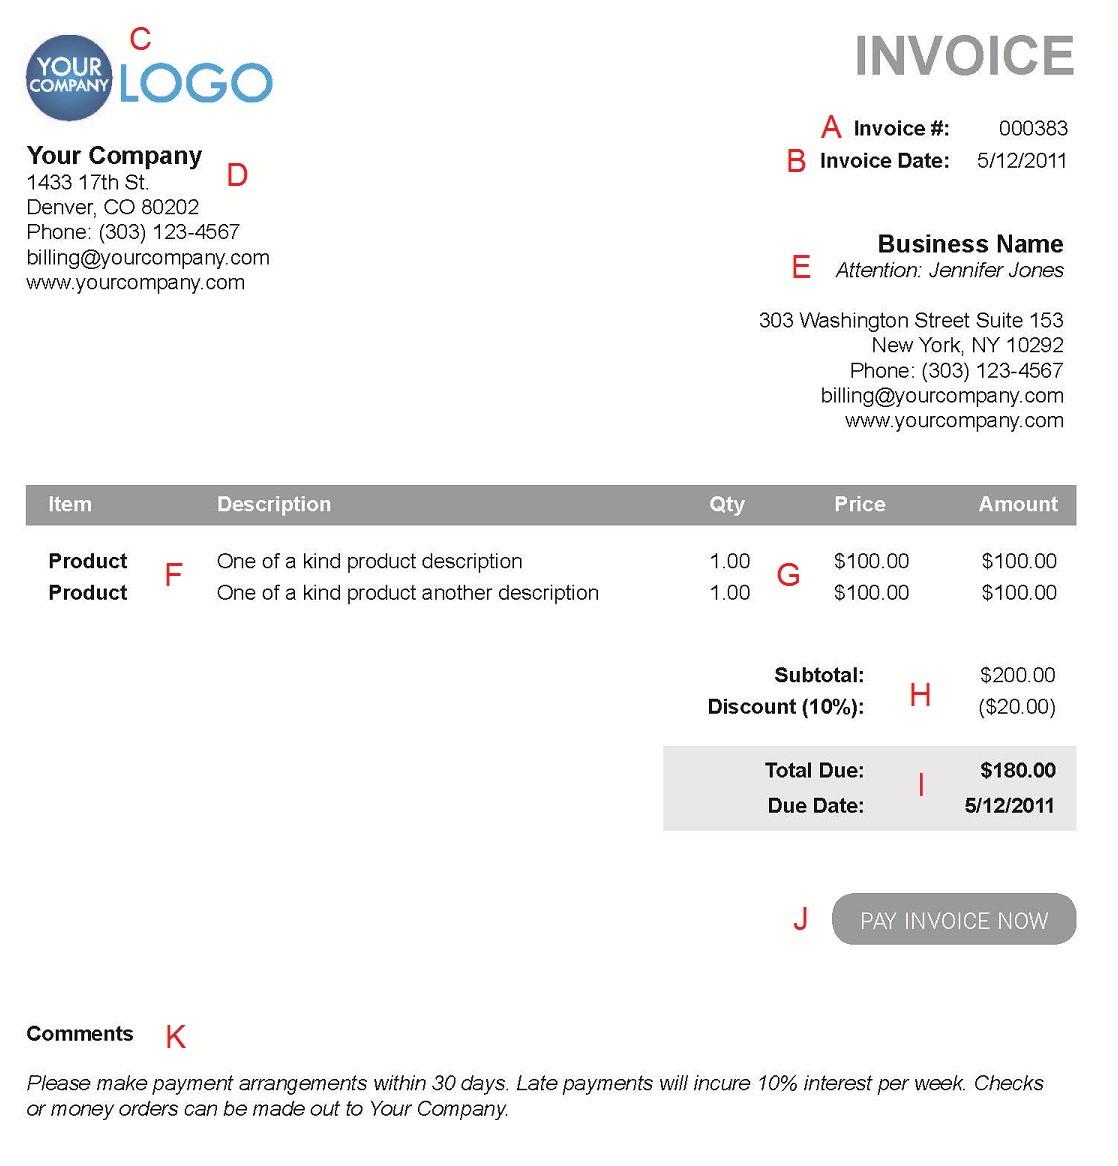 Centralasianshepherdus  Pretty The  Different Sections Of An Electronic Payment Invoice With Handsome A  With Divine Free Invoice Templete Also Free Invoice Templates Word In Addition How To Process An Invoice And Freelance Designer Invoice As Well As Invoice Memo Additionally Invoice Pricing For New Cars From Paysimplecom With Centralasianshepherdus  Handsome The  Different Sections Of An Electronic Payment Invoice With Divine A  And Pretty Free Invoice Templete Also Free Invoice Templates Word In Addition How To Process An Invoice From Paysimplecom